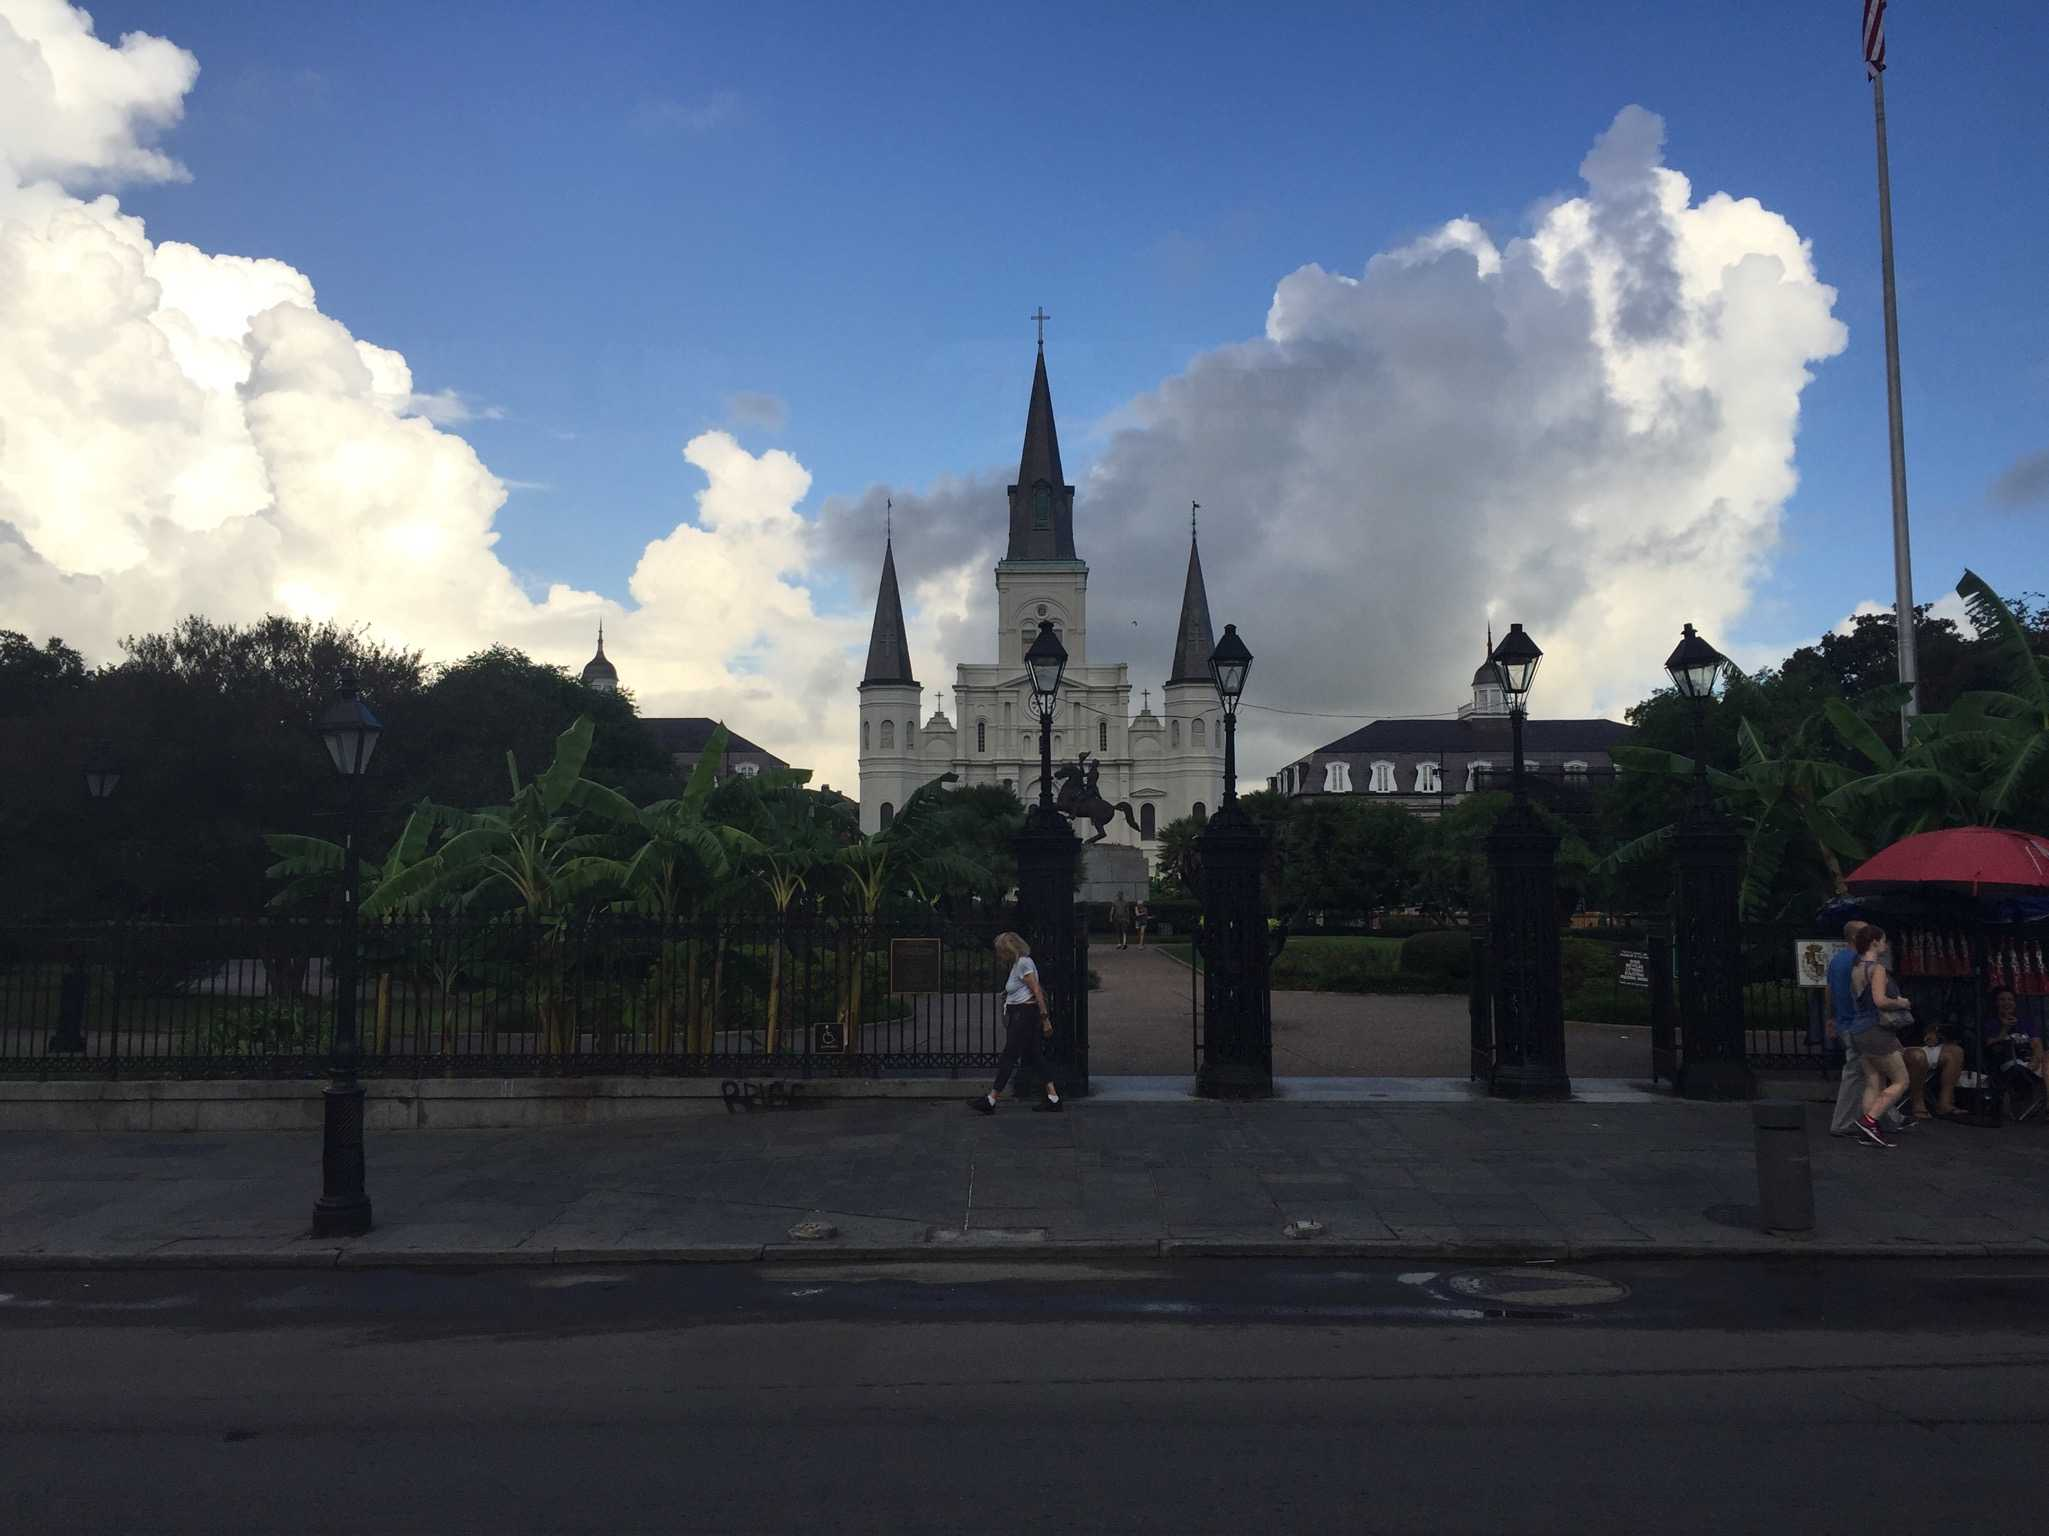 THE BIG EASY: Here in Jackson Square, you can sit and watch the street performers or walk through the shops lining the square.